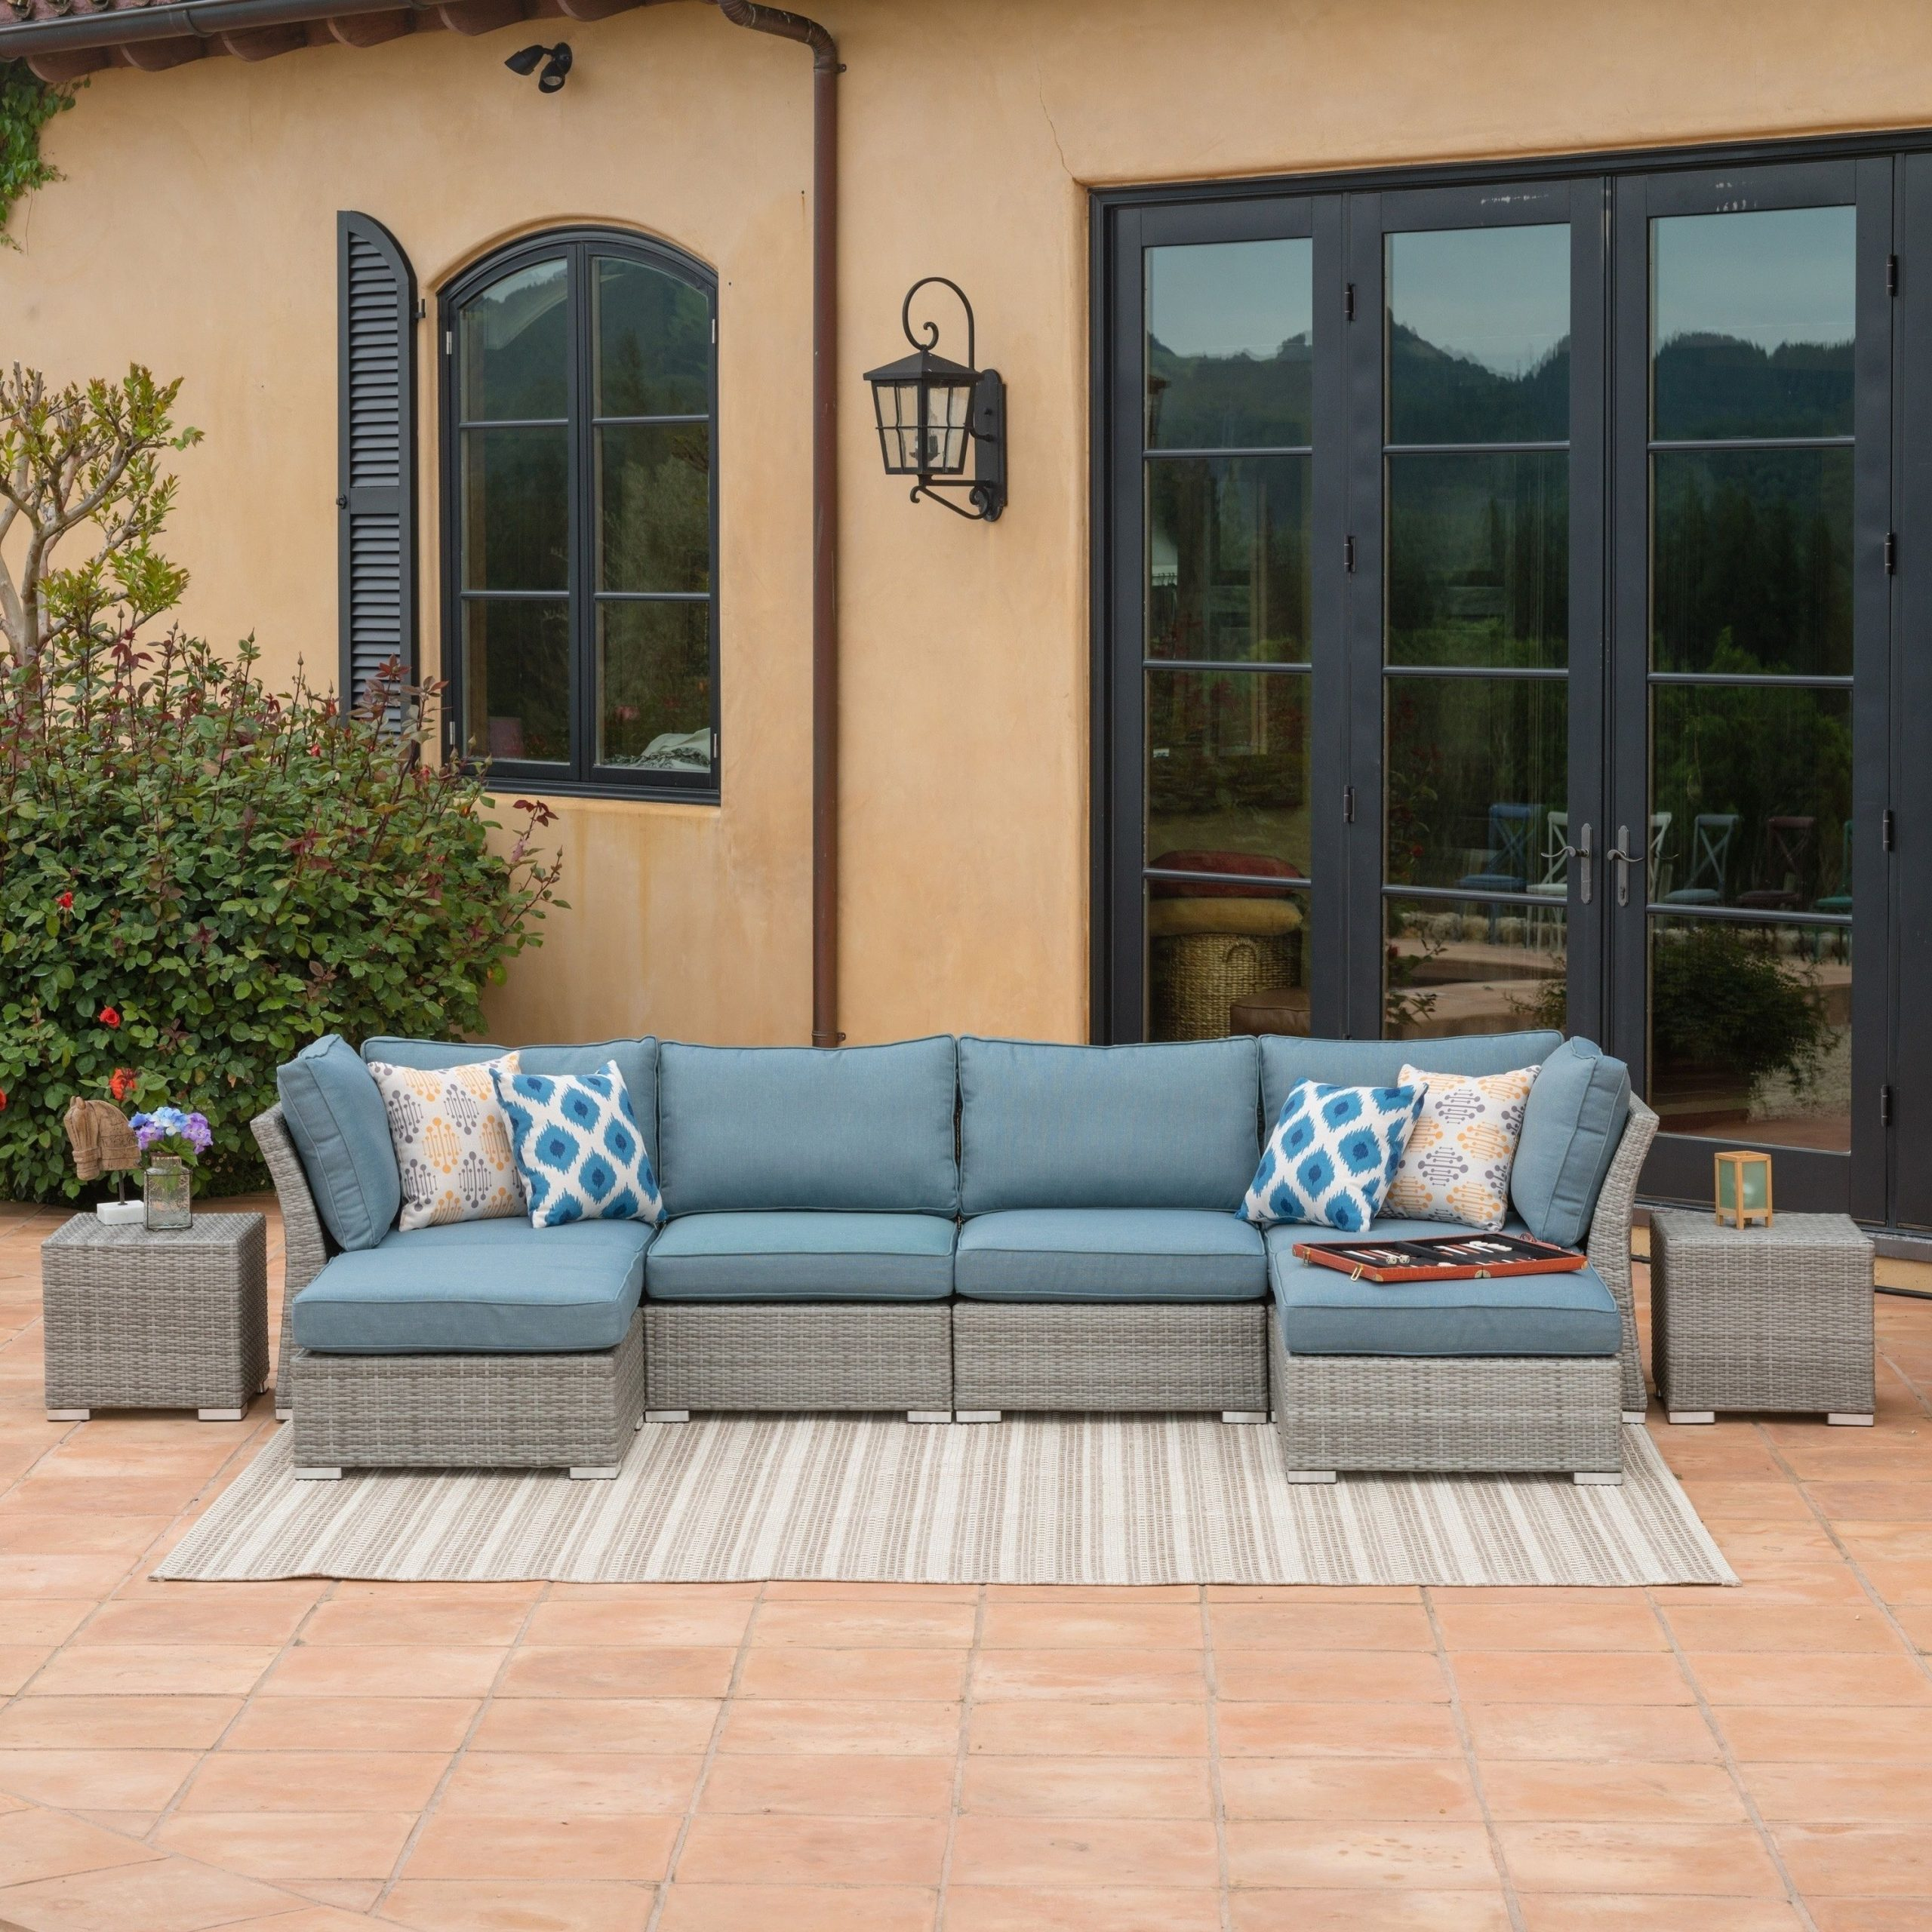 Corvus 8 Piece Grey Wicker Patio Furniture Set With Blue Throughout Popular Boyce Outdoor Patio Sectionals With Cushions (View 6 of 25)